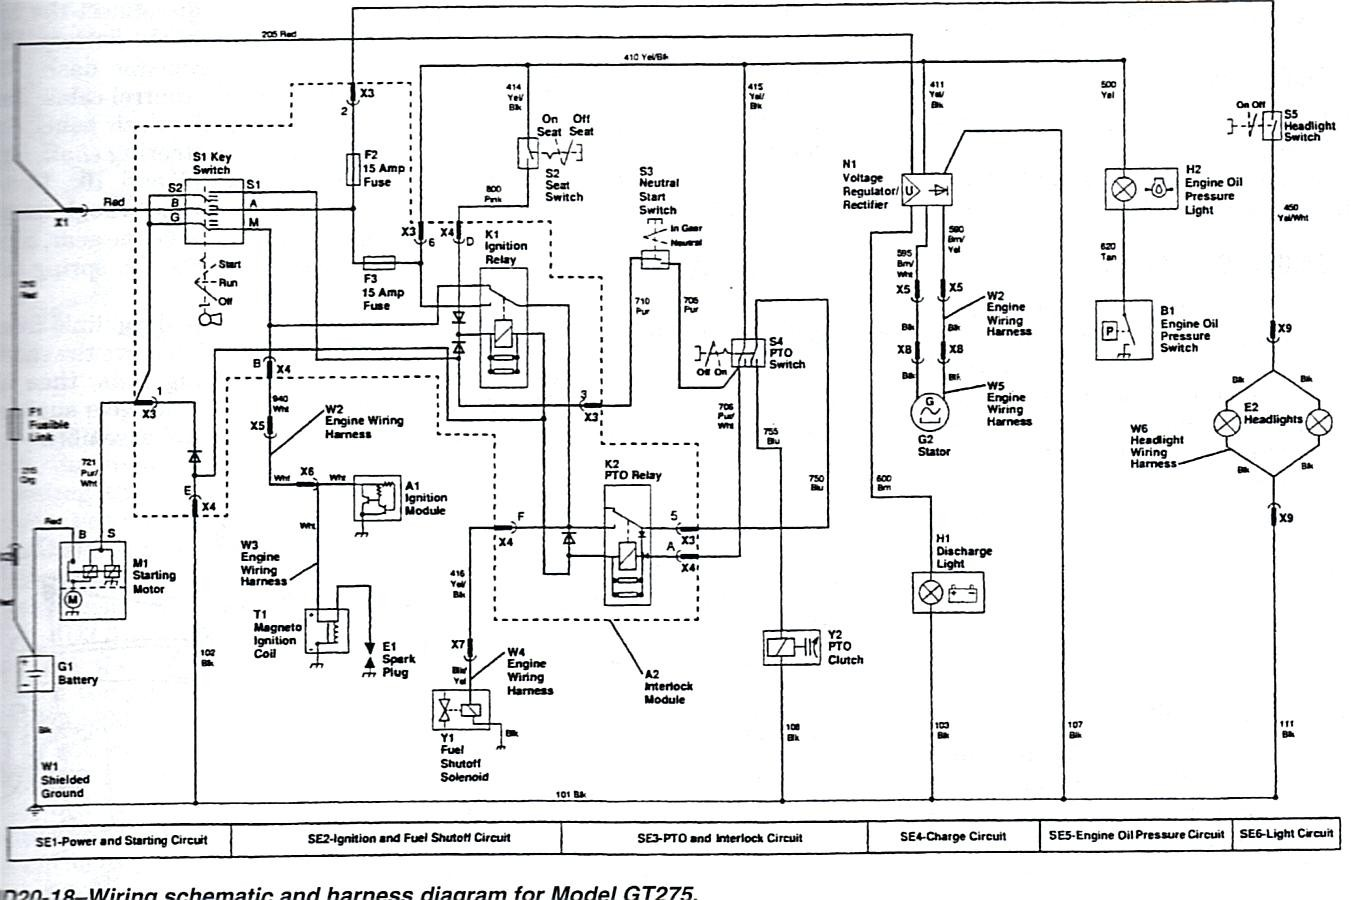 6x4 Gator Wire Harness Diagram - Wiring Diagram Dash on john deere diagnostic codes, john deere parts diagrams, john deere radio wiring diagram, john deere ignition switch wiring, john deere parts specifications, john deere solenoid wiring, john deere solenoid schematics, john deere maintenance schedule,